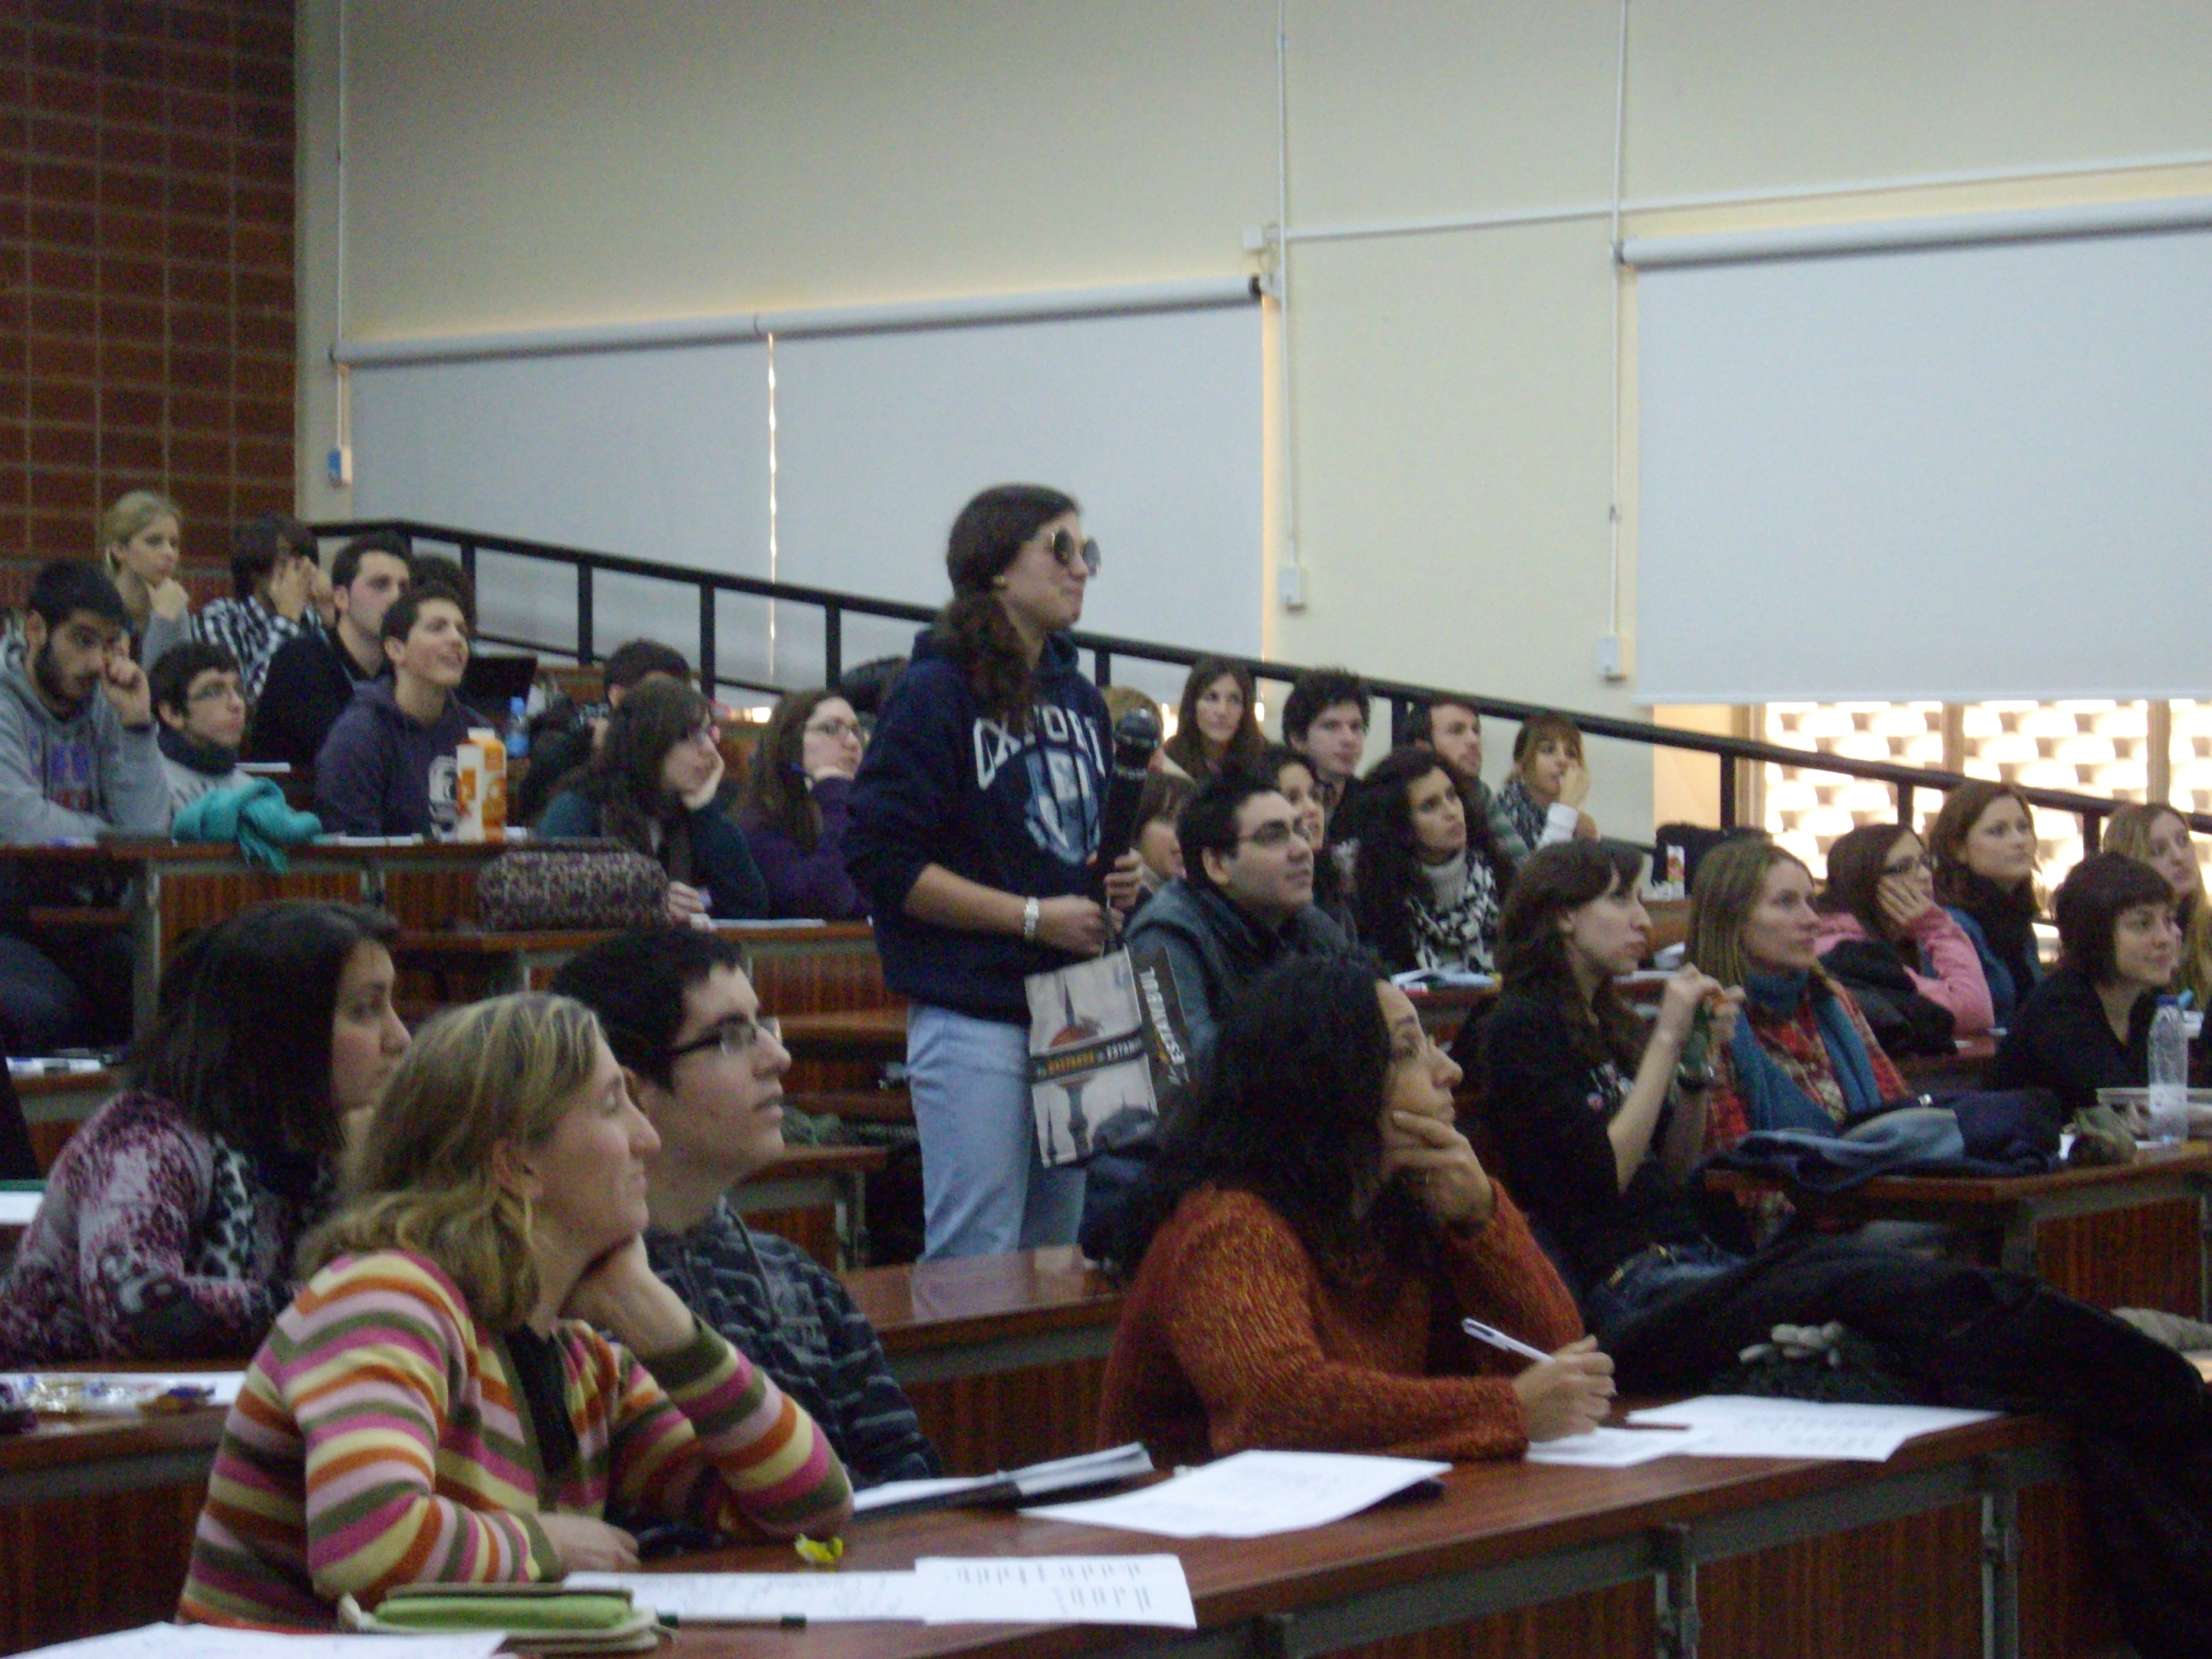 Students listening to a talk